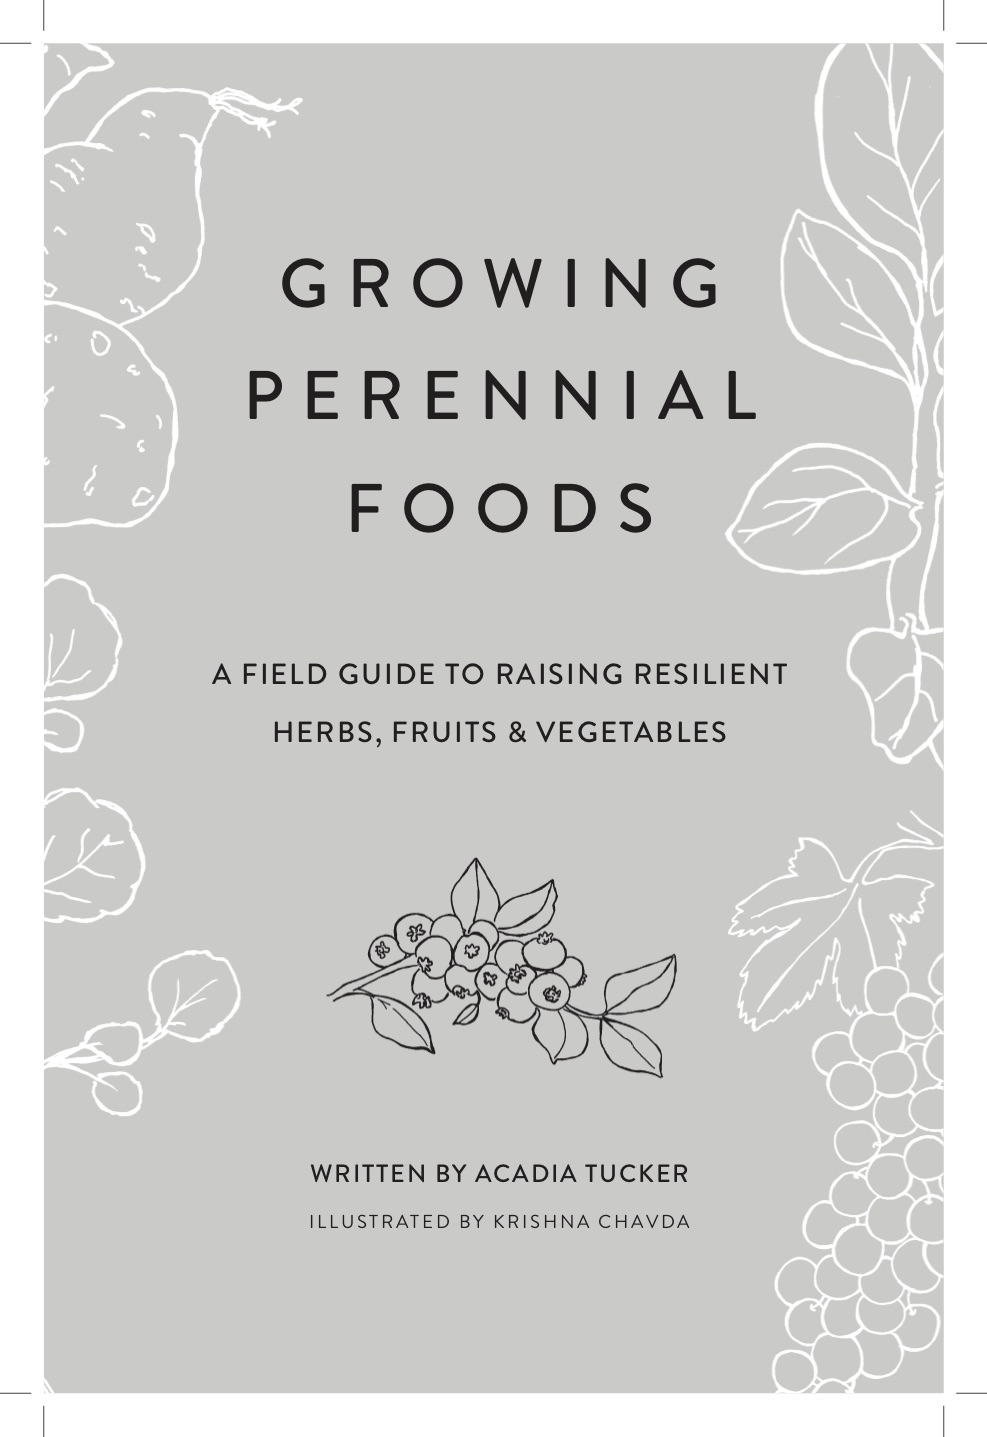 Growing Perennial Foods Preview 1.jpg